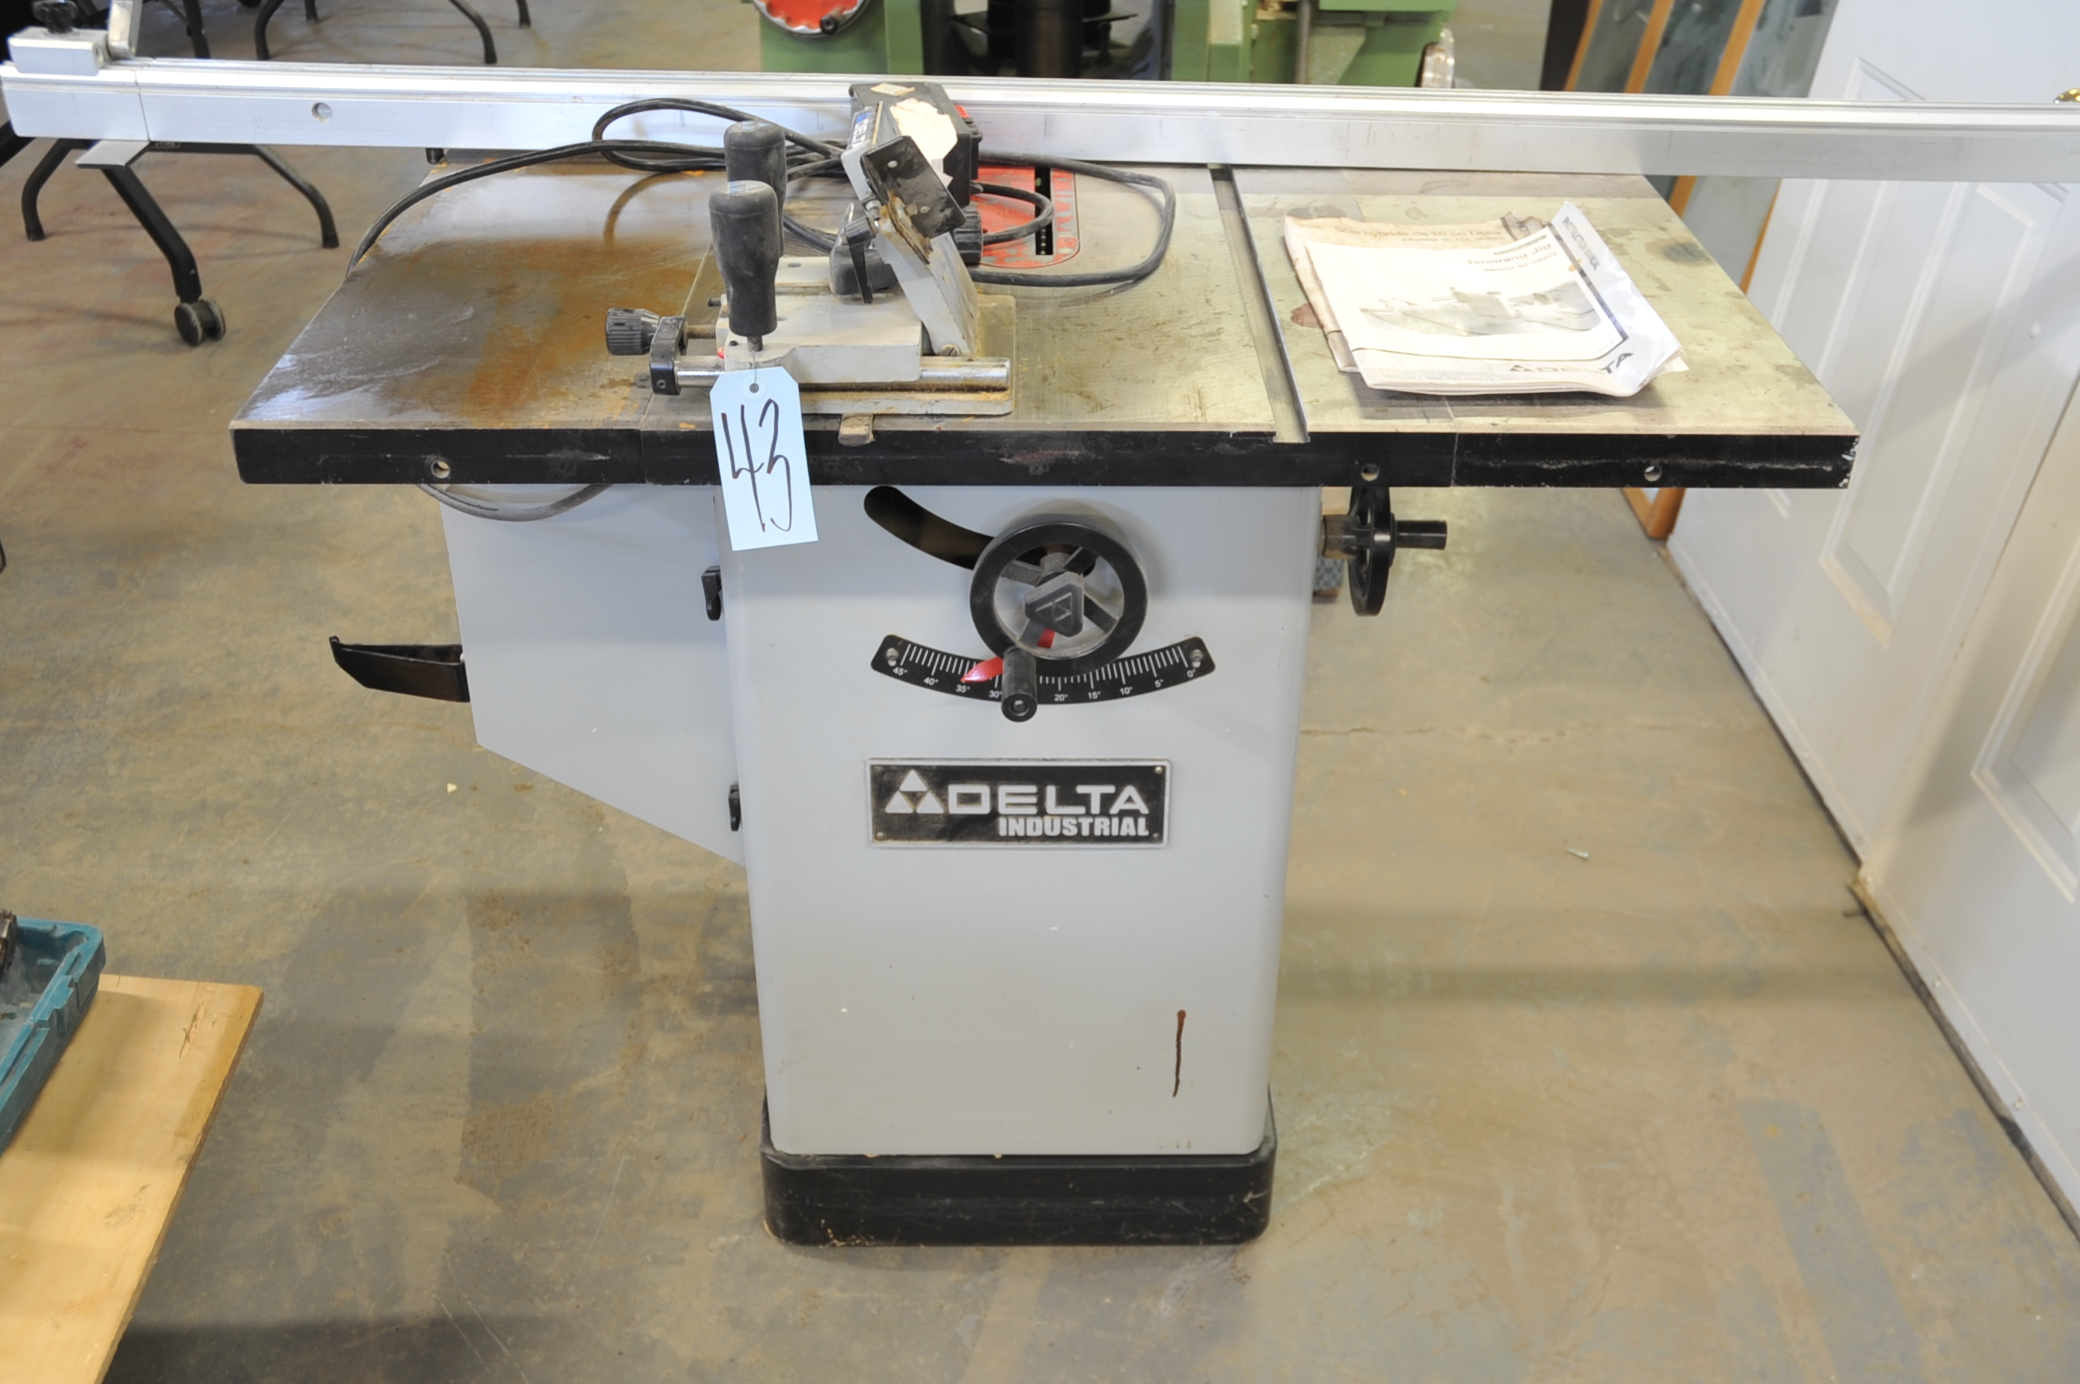 Delta Industrial Model 36 653c Table Saw S N 002258q